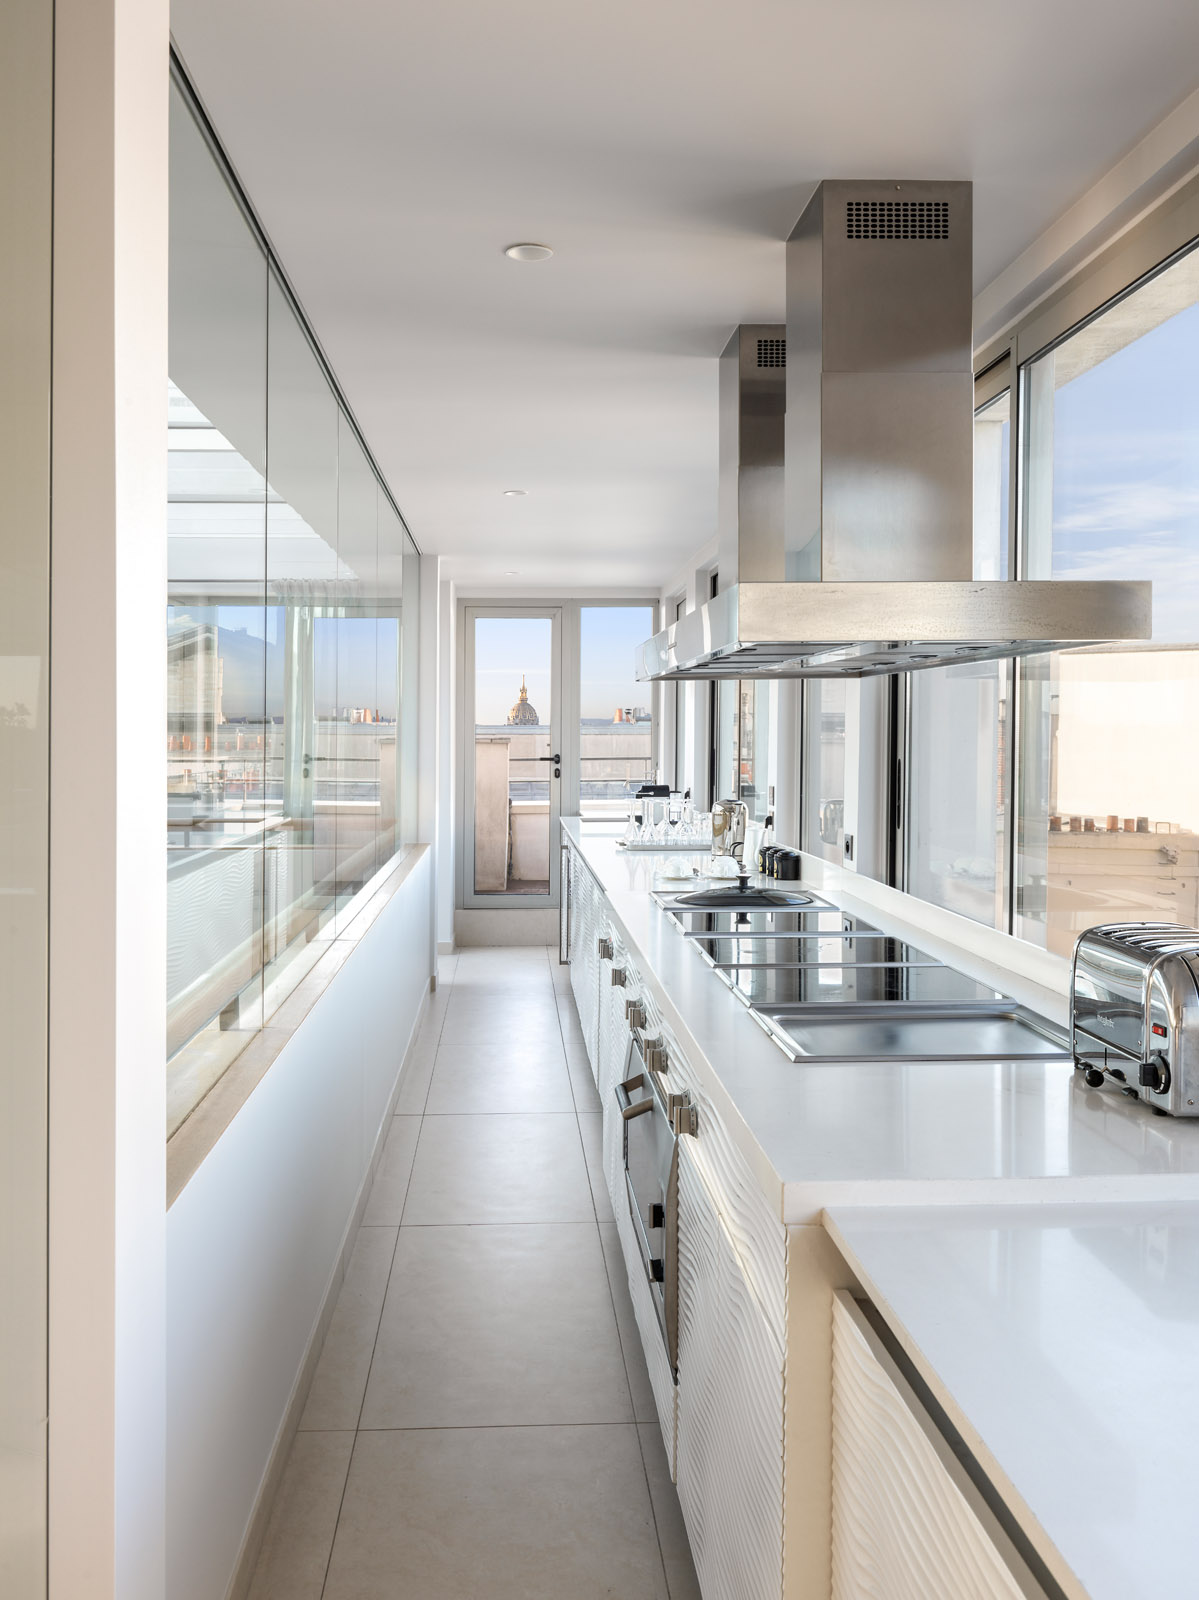 390/Photos/Chambres/Sky Penthouse/hotel-pourtales-chambre-sky_penthouse_3.jpg